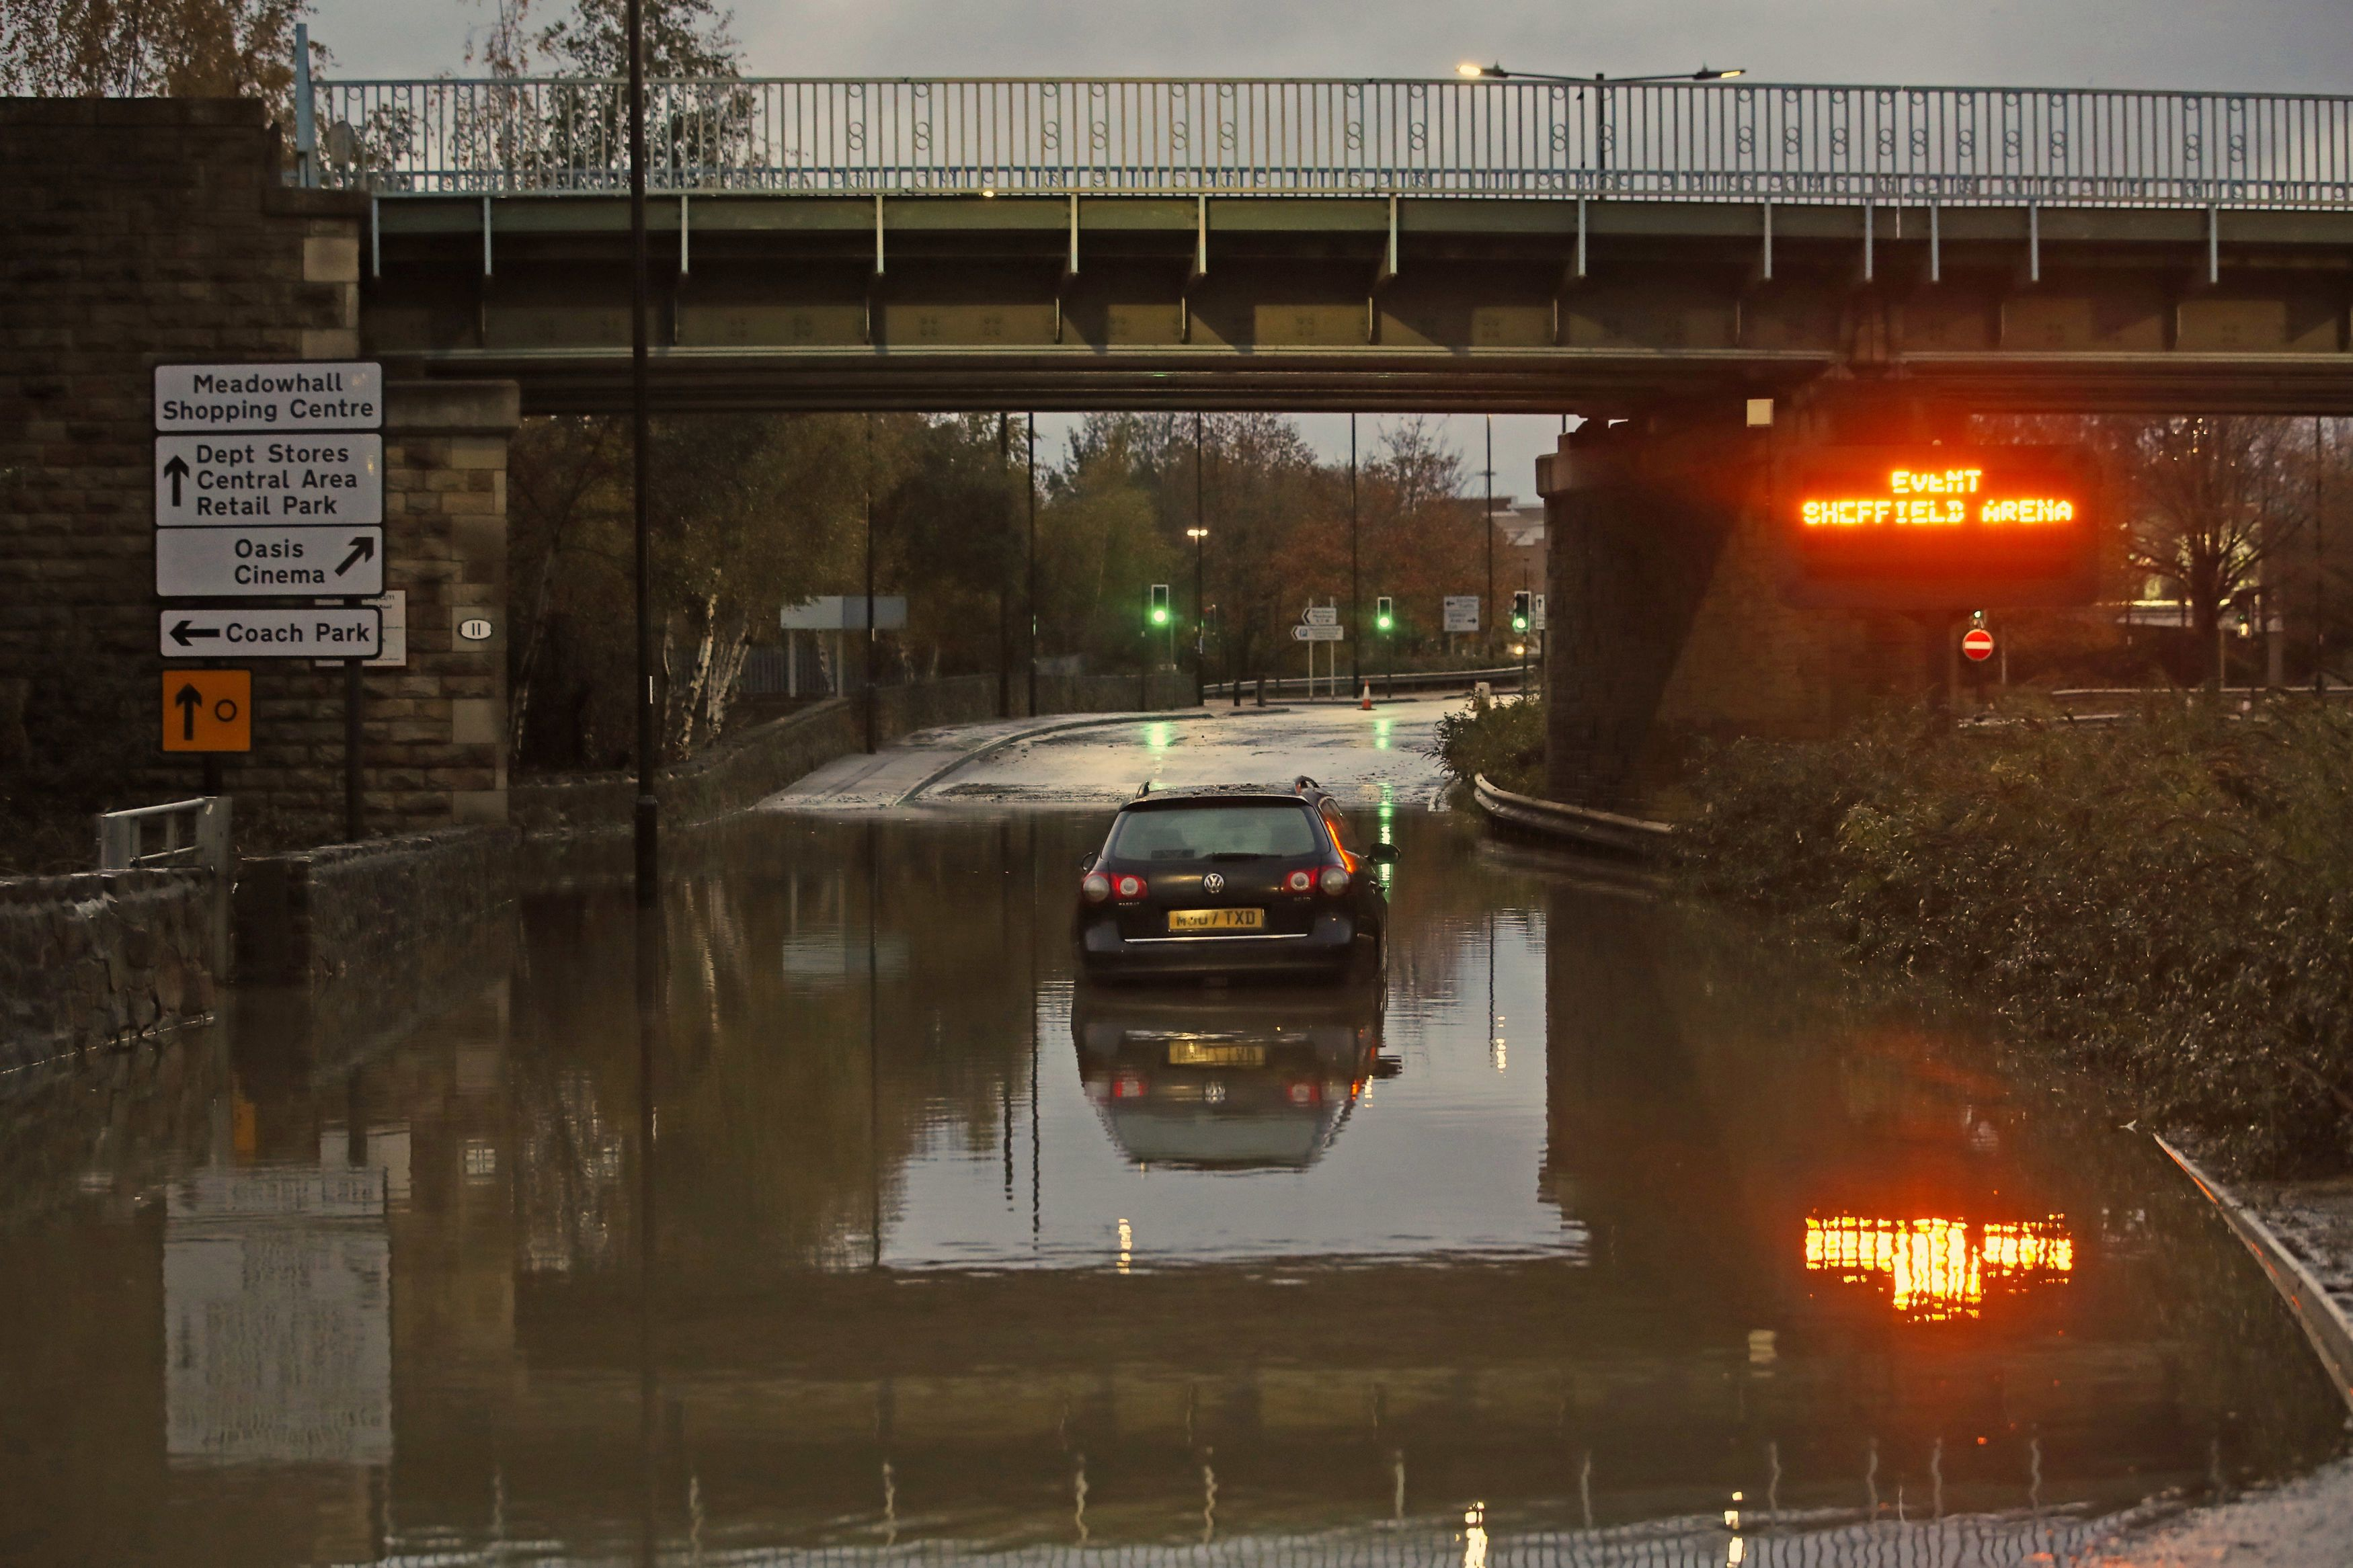 Northern England was hit worst by the rain last night